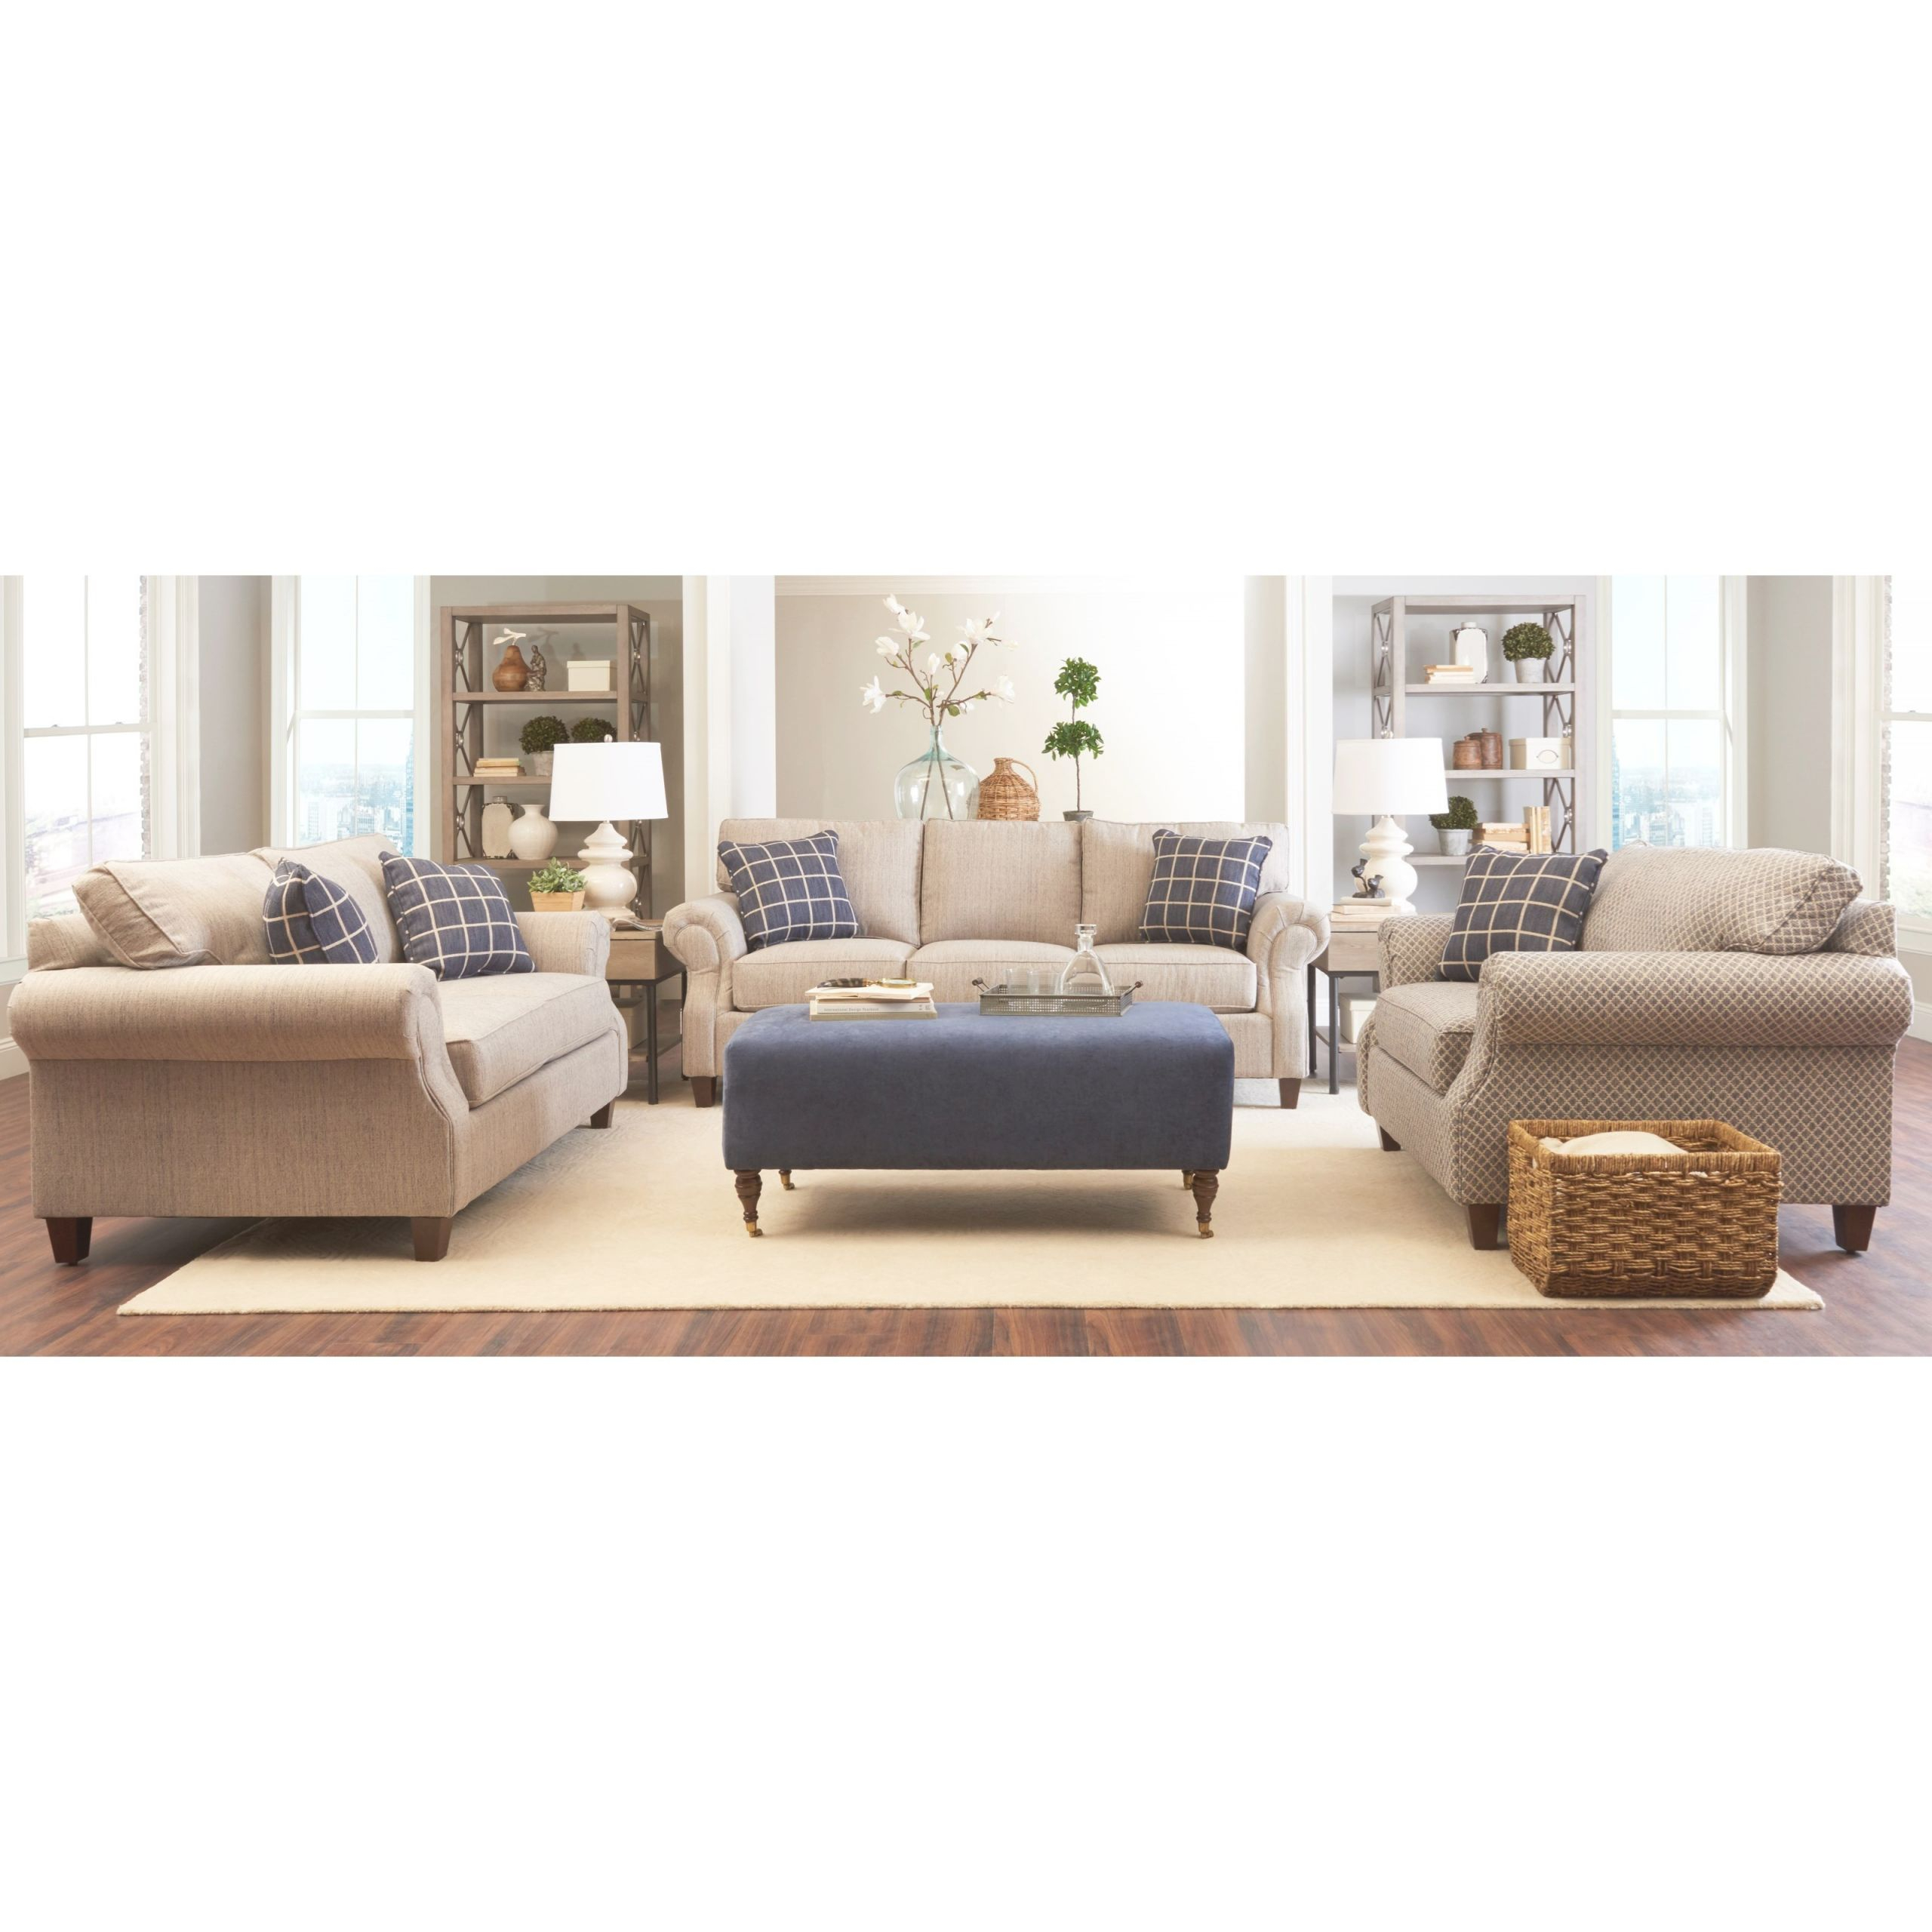 Casual Living Room Groupklaussner | Wolf Furniture in Casual Living Room Furniture